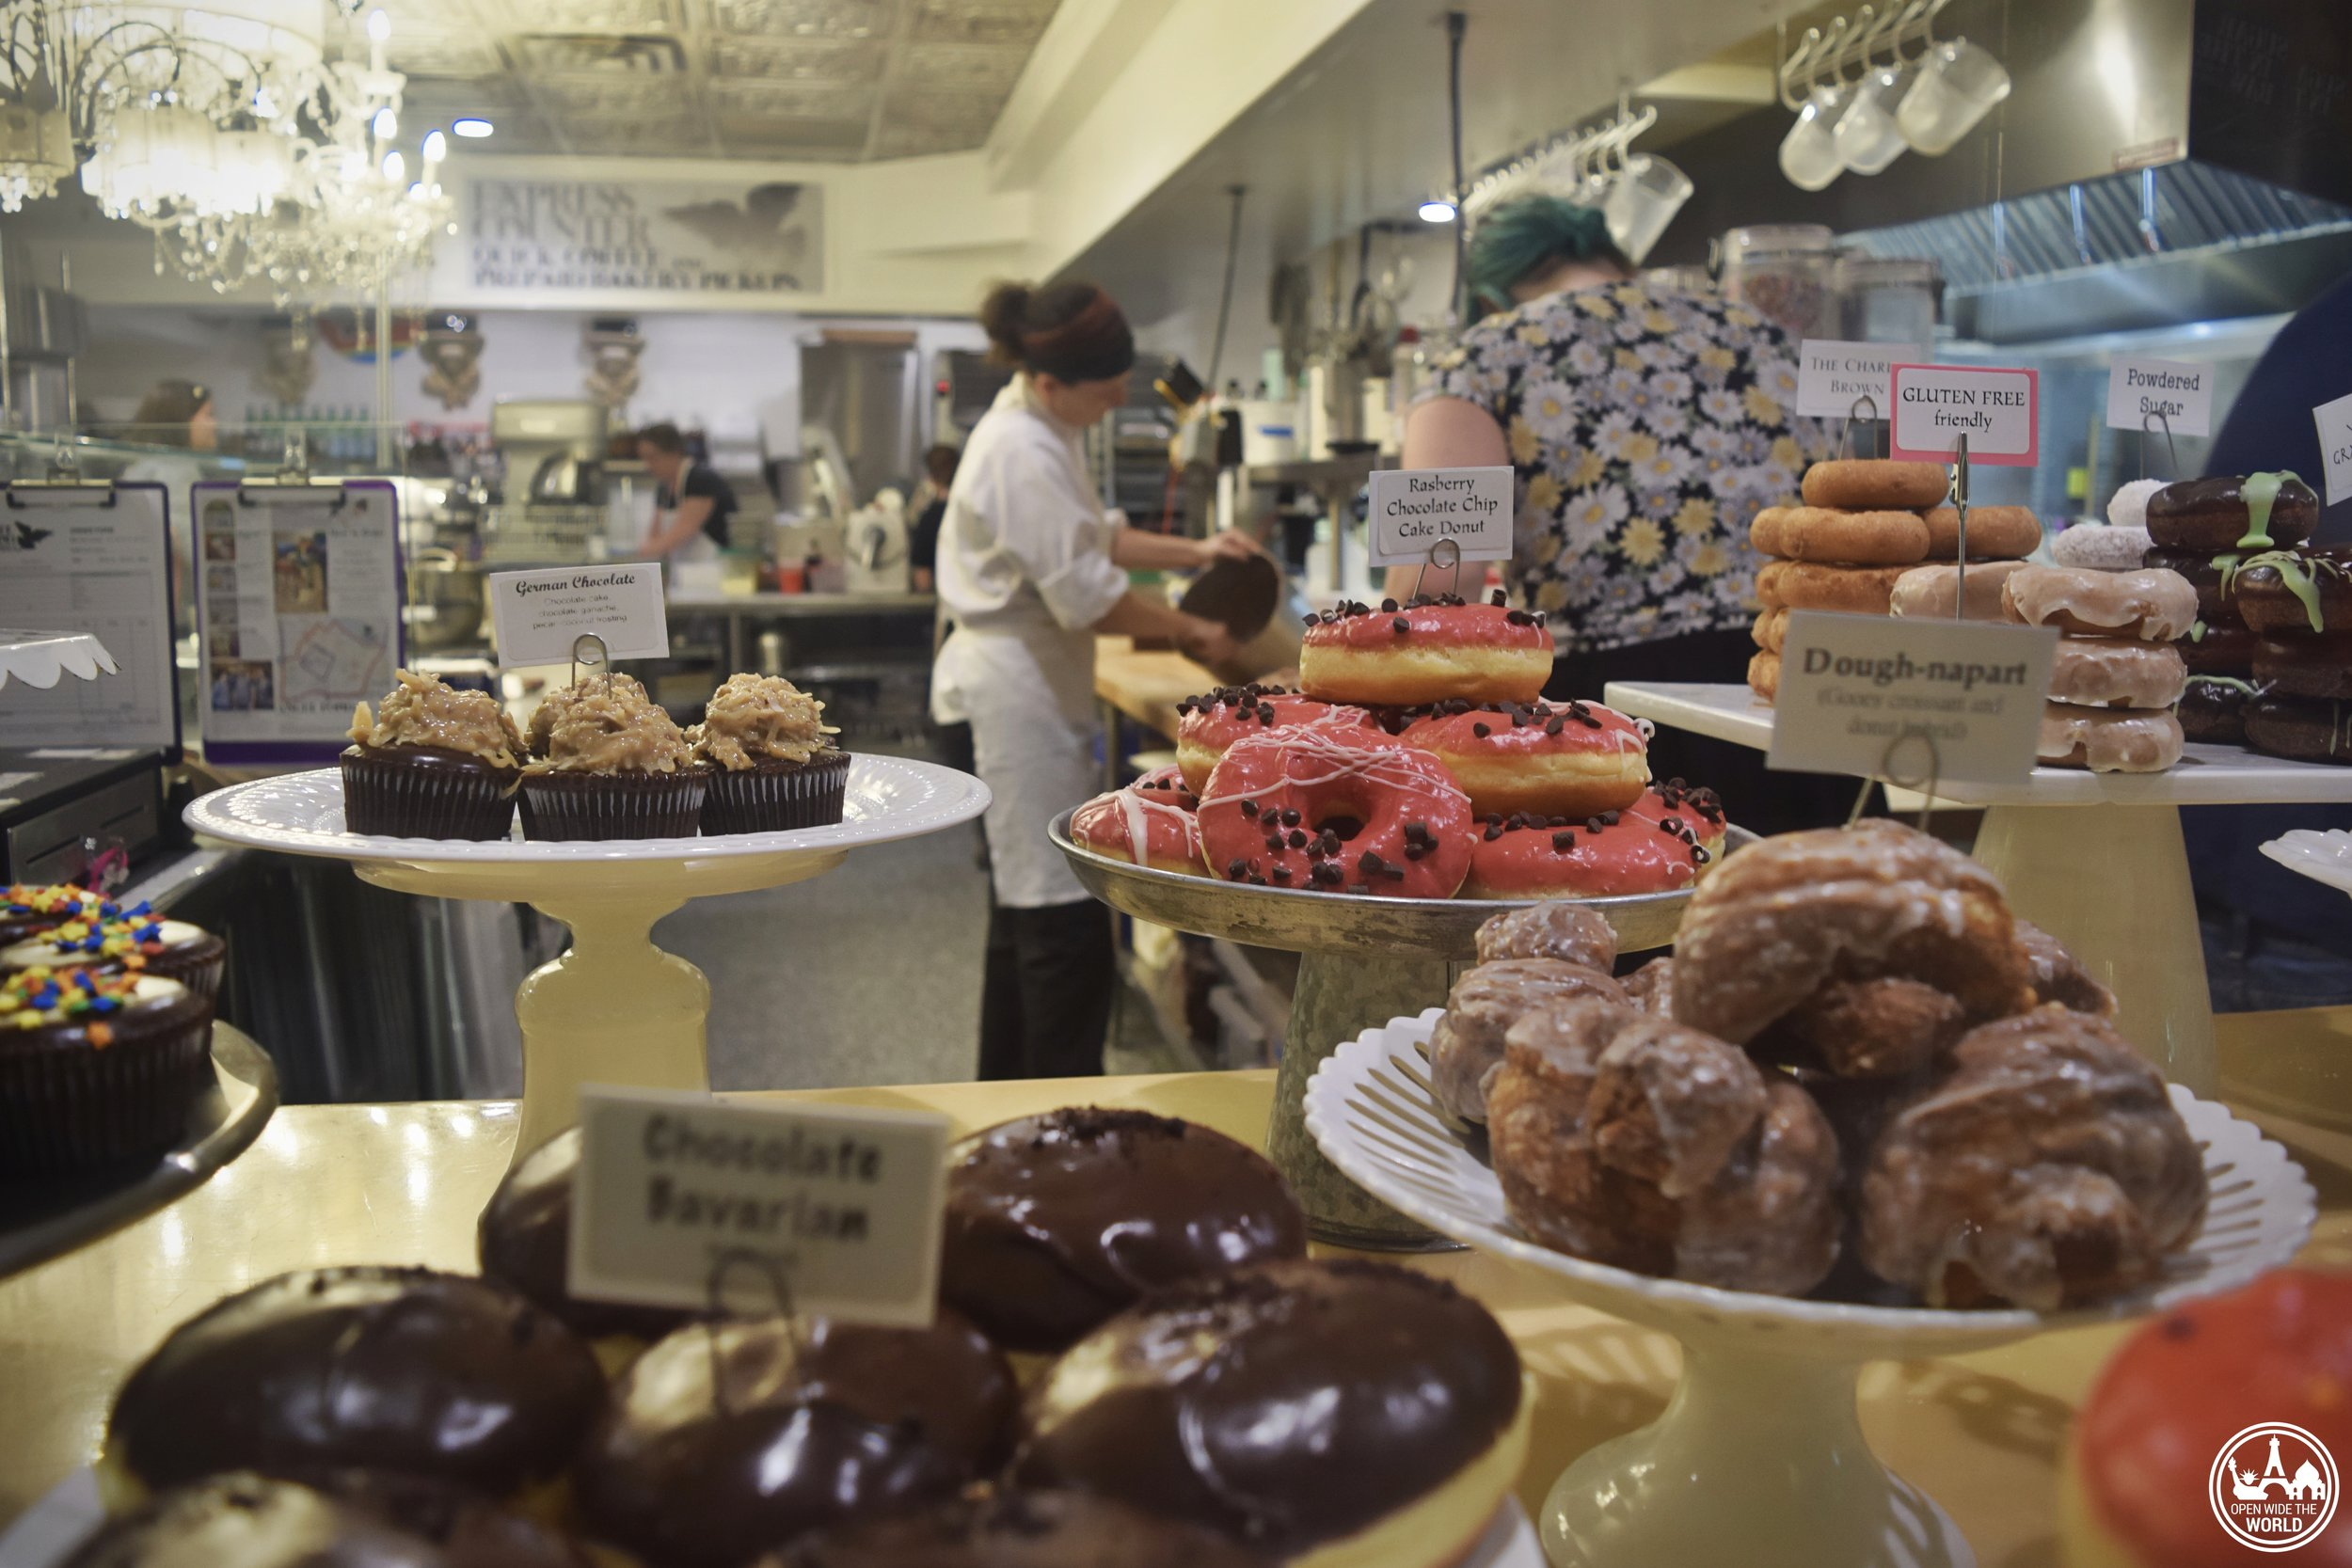 A recent survey of the U.S.'s 50 most populous cities revealed Minneapolis to rank 48th in availability of donuts. In this statistically donut-poor city, check out these five great donut shops.